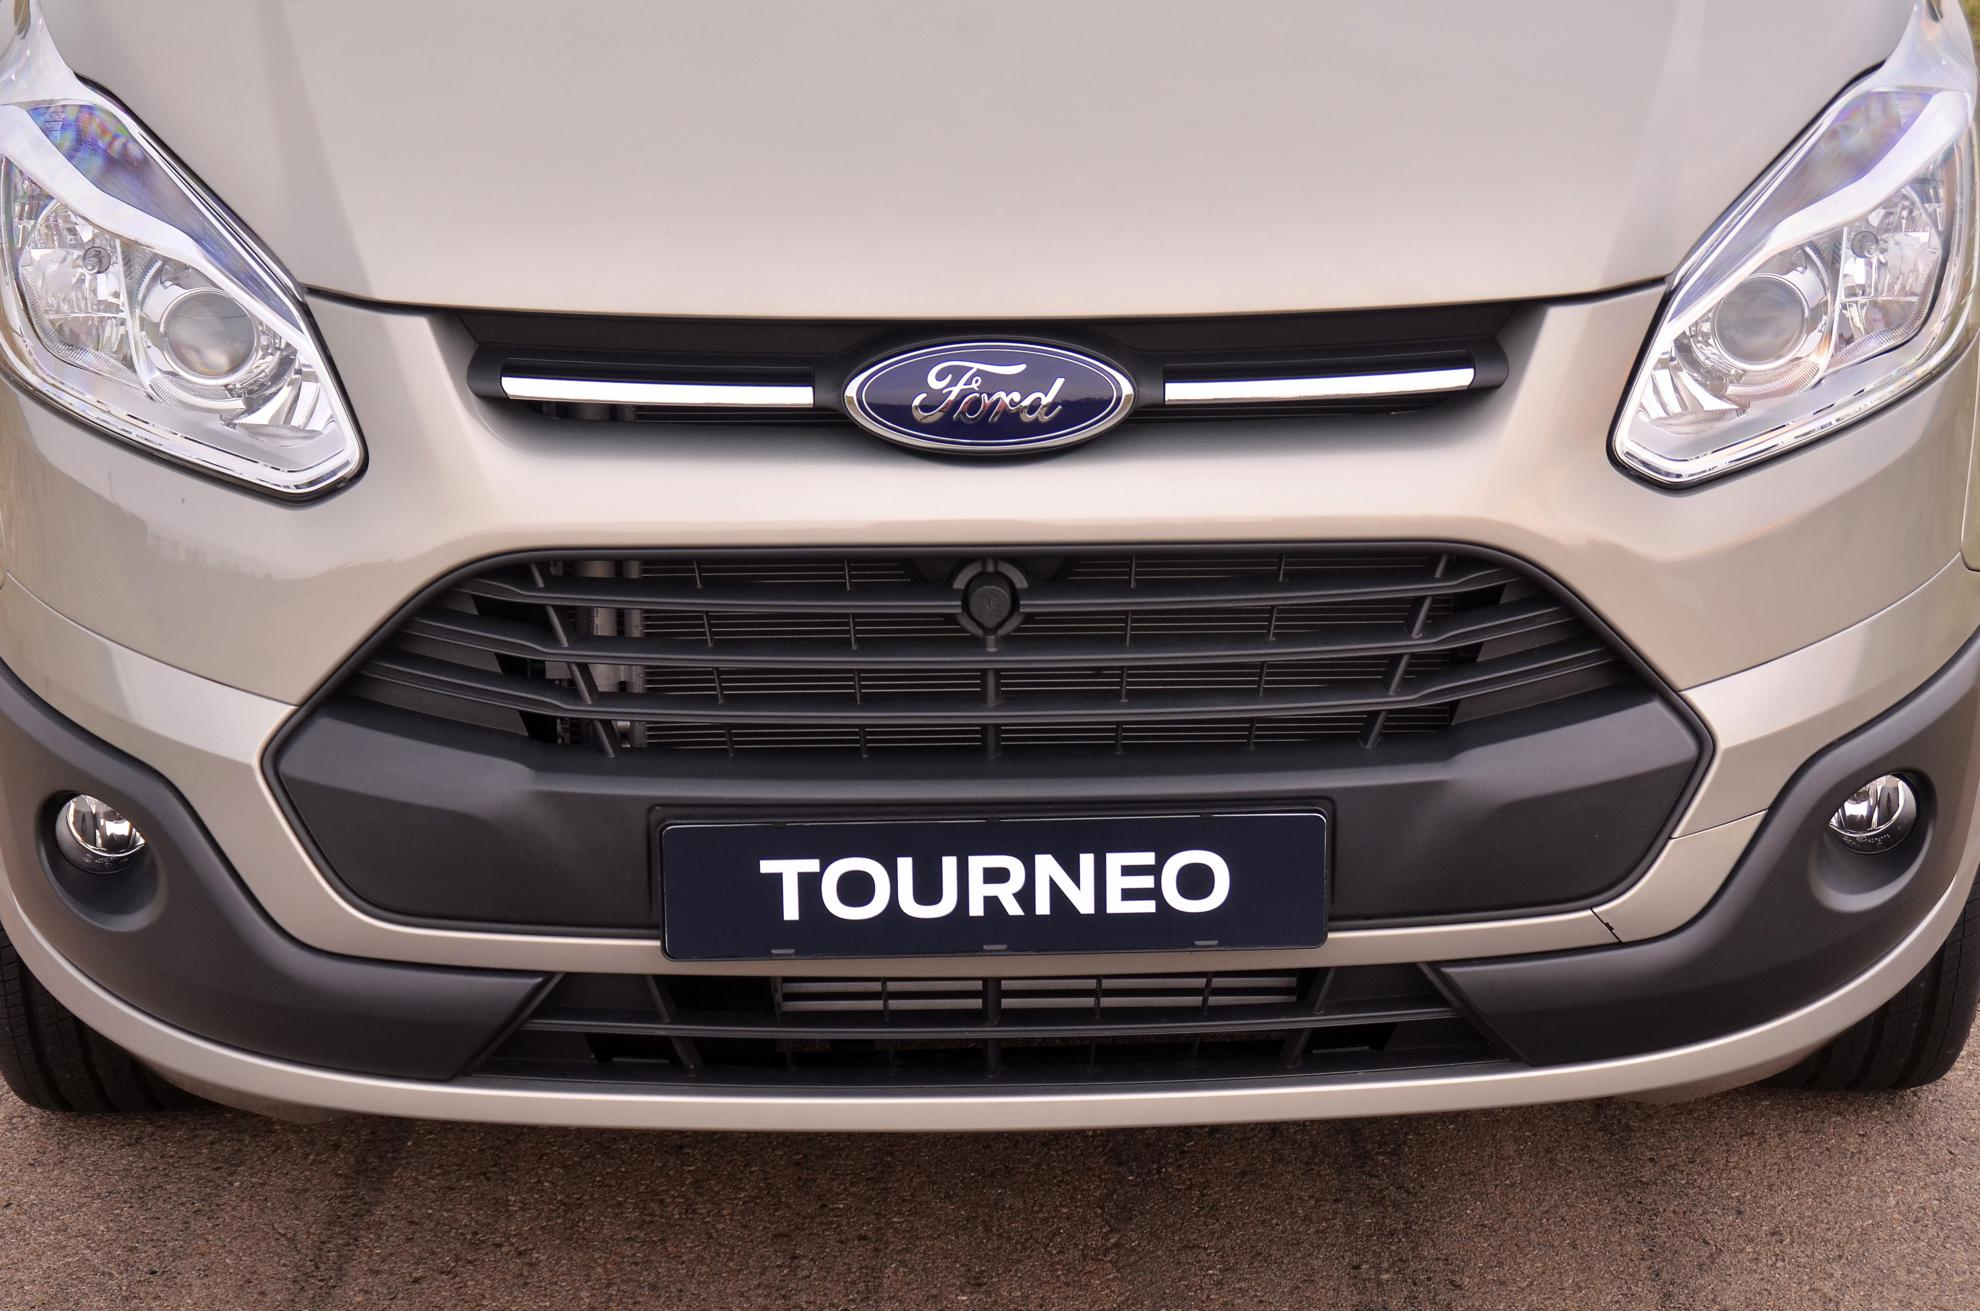 Ford Tourneo 2013 Grill